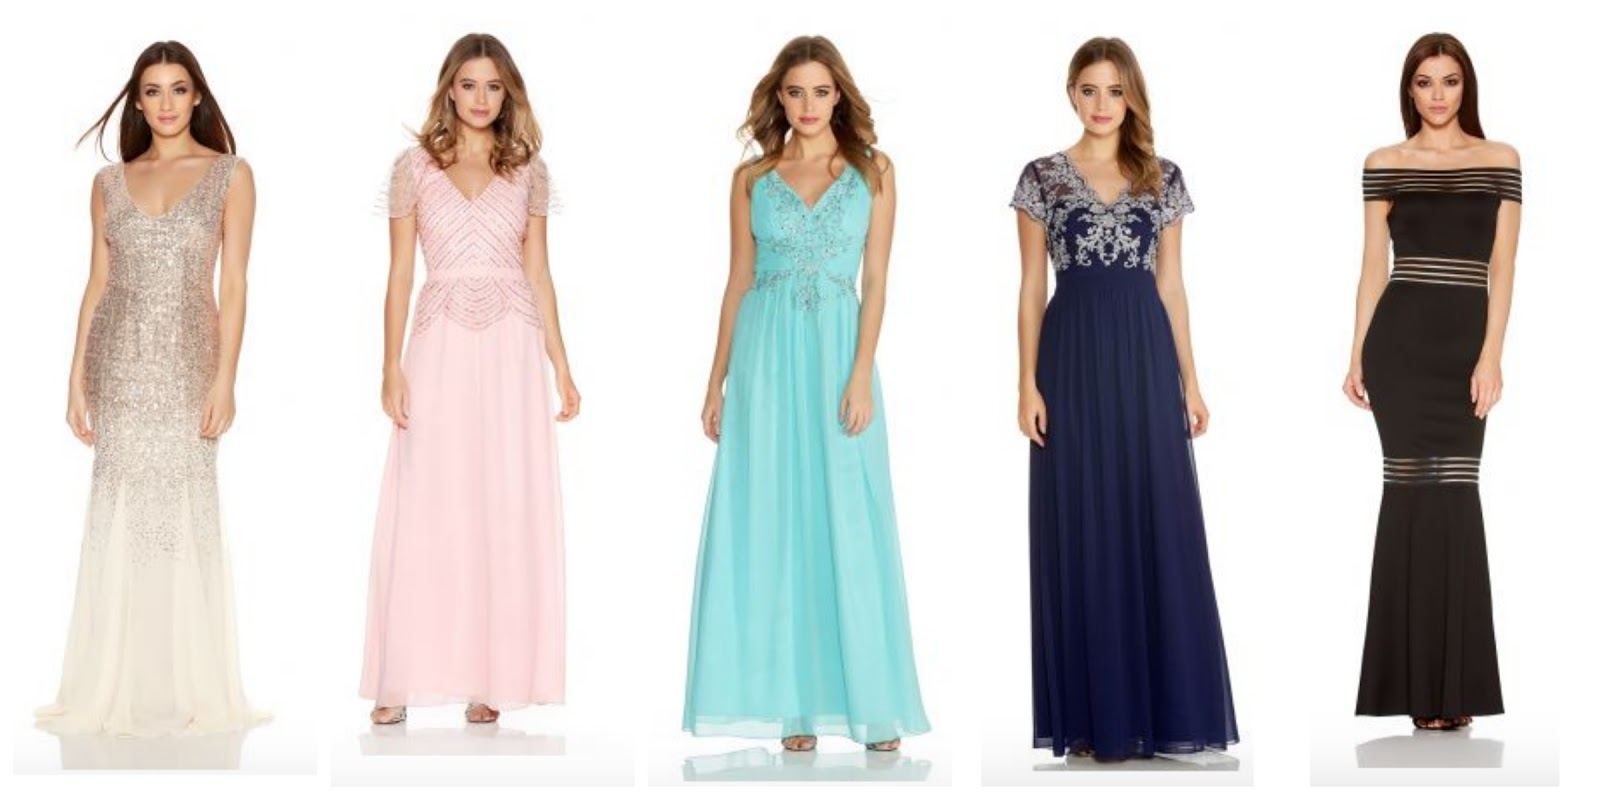 Top 5 Prom Dresses From Quiz Clothing